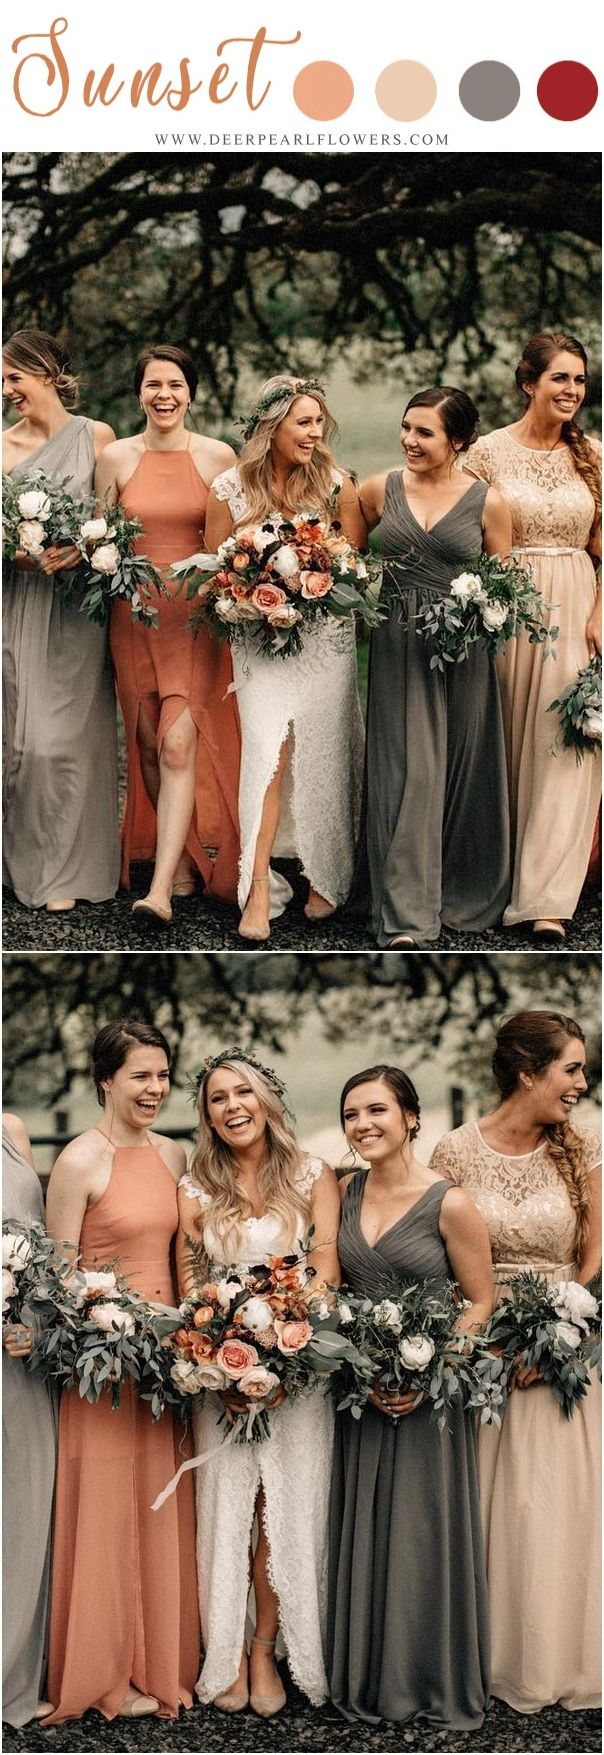 Wedding after party decorations january 2019  Vintage Sunset Orange Wedding Color Ideas for   Bridesmaid